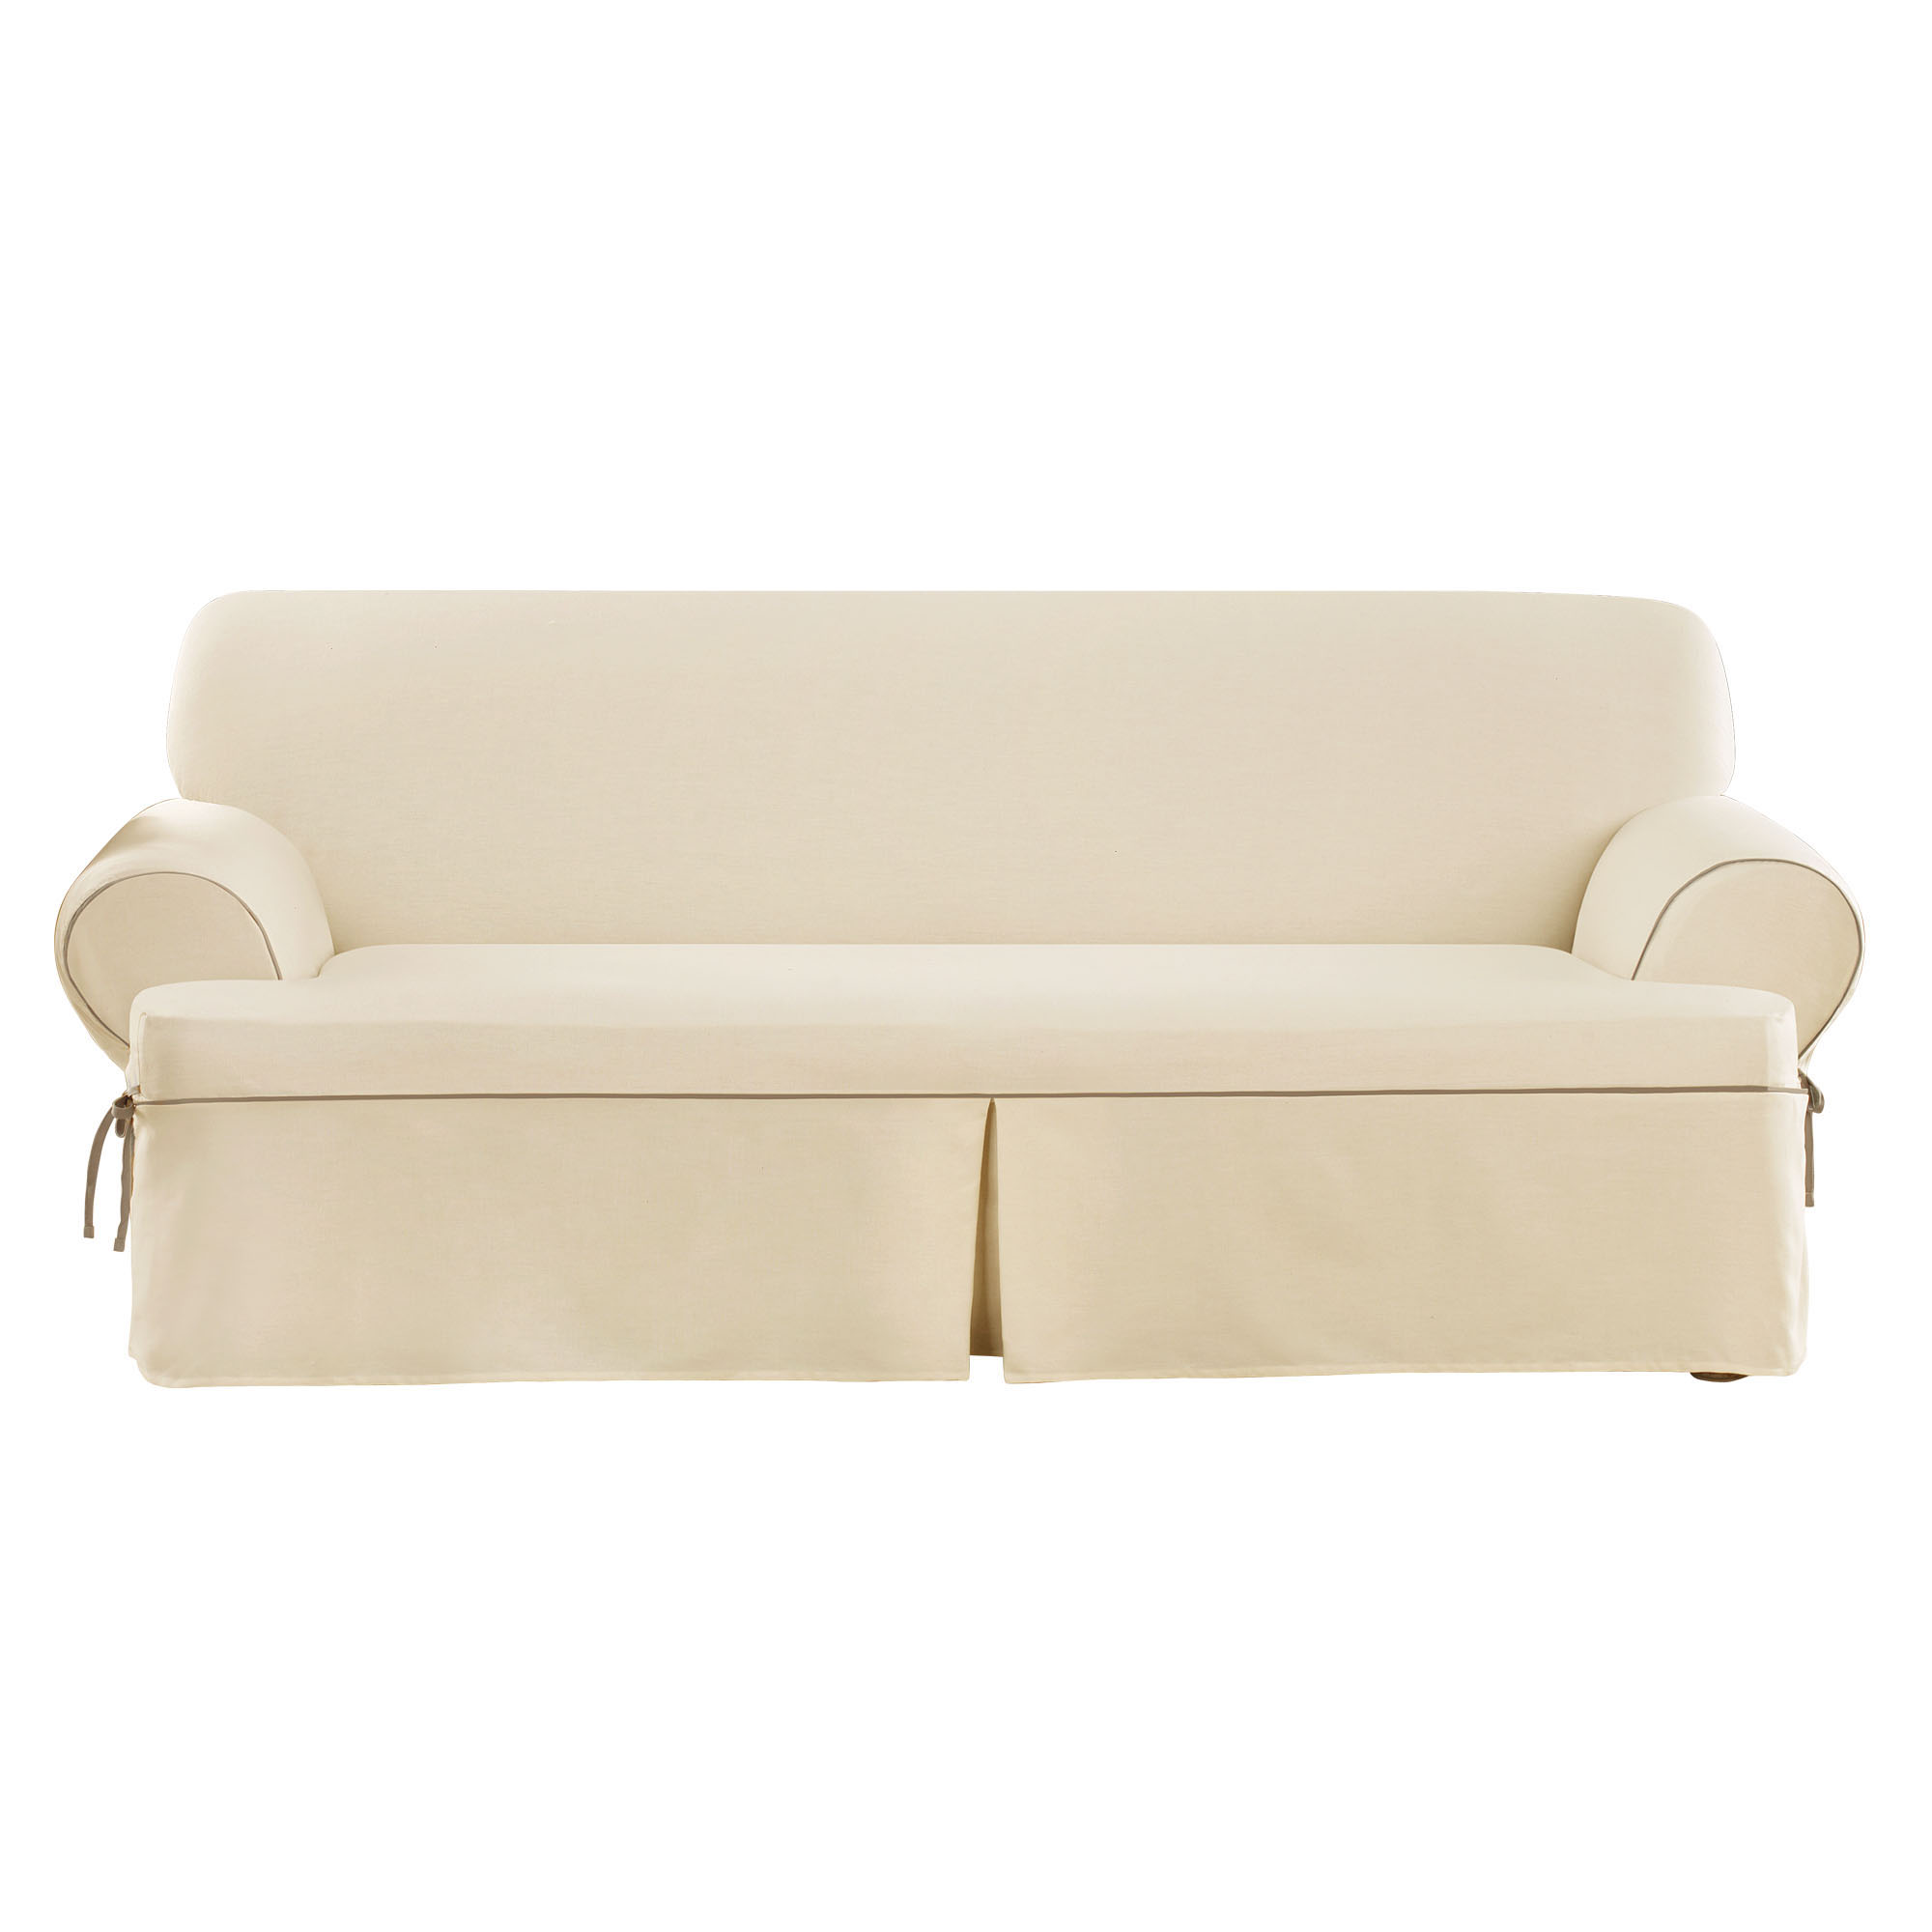 Sure Fit Cvc Contrast Cord Duck T Cushion Sofa Slipcover Natural Cocoa Ebay